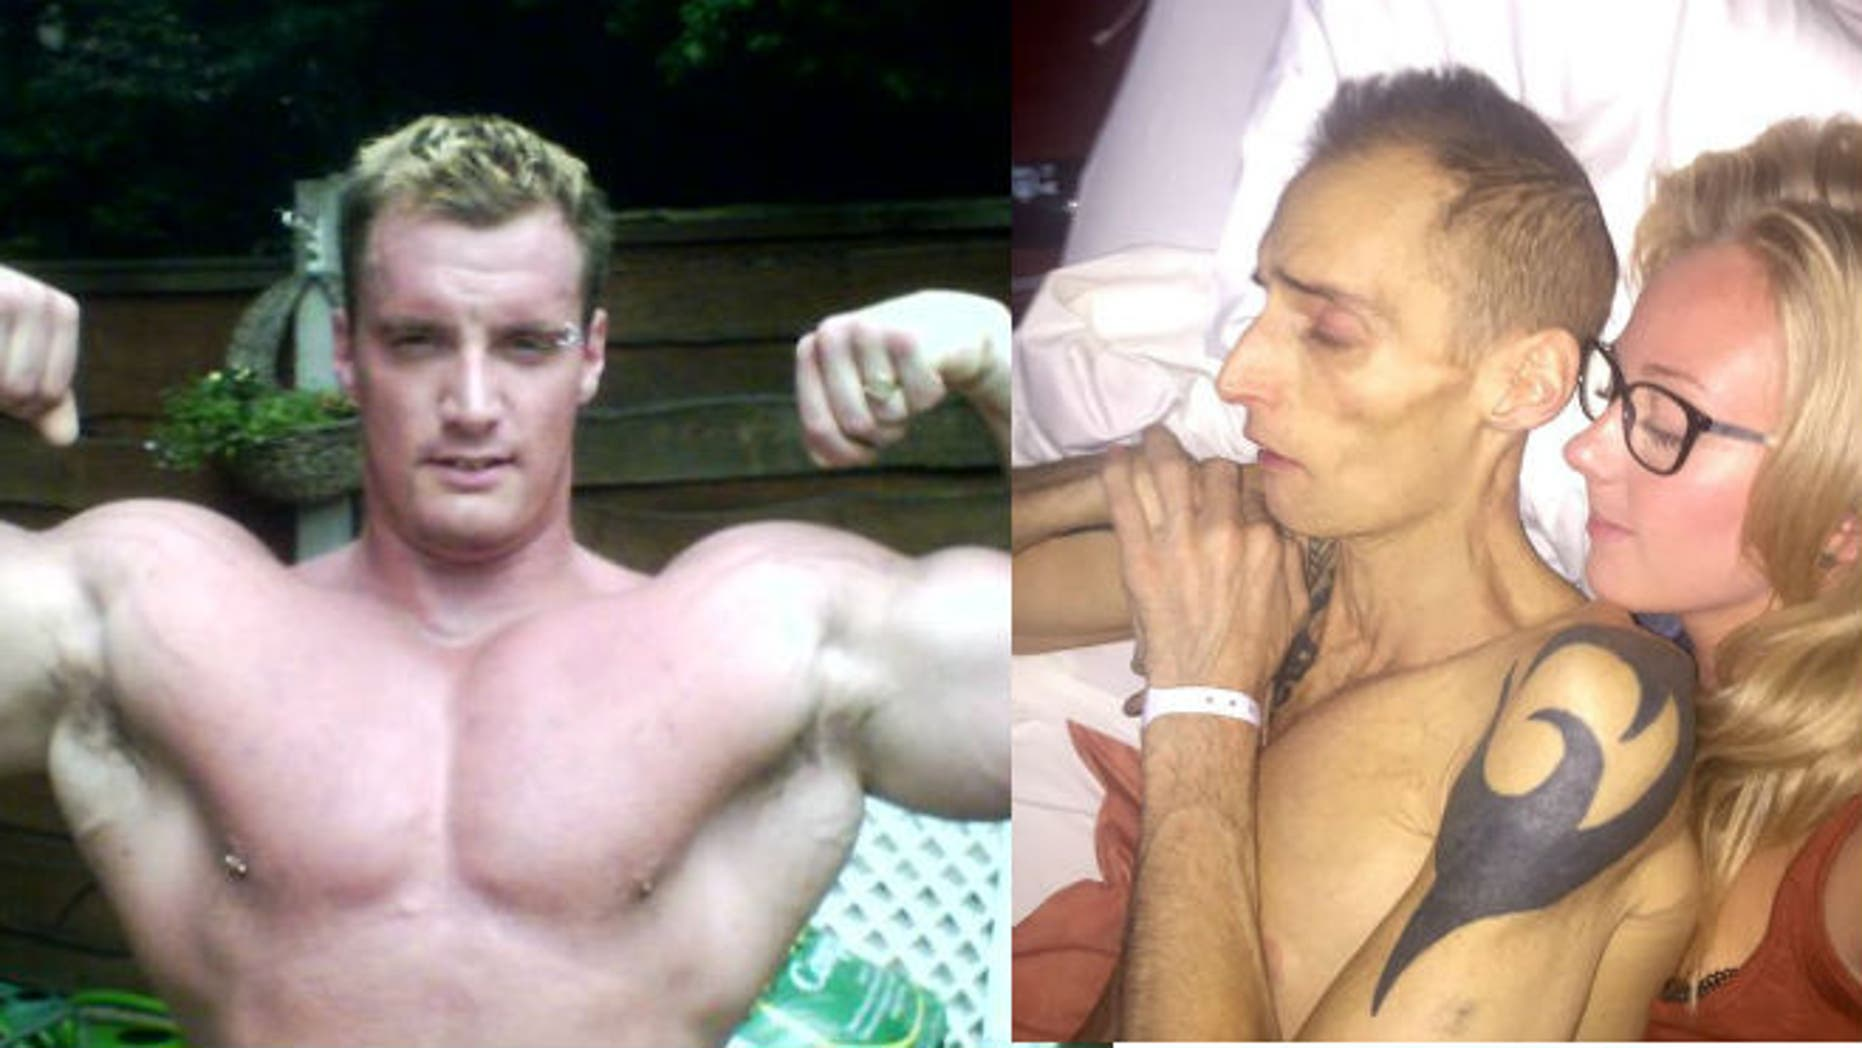 Wharmby in 2007 (left) and in July 2015 (right, with his partner, Charlotte) (images via Facebook)